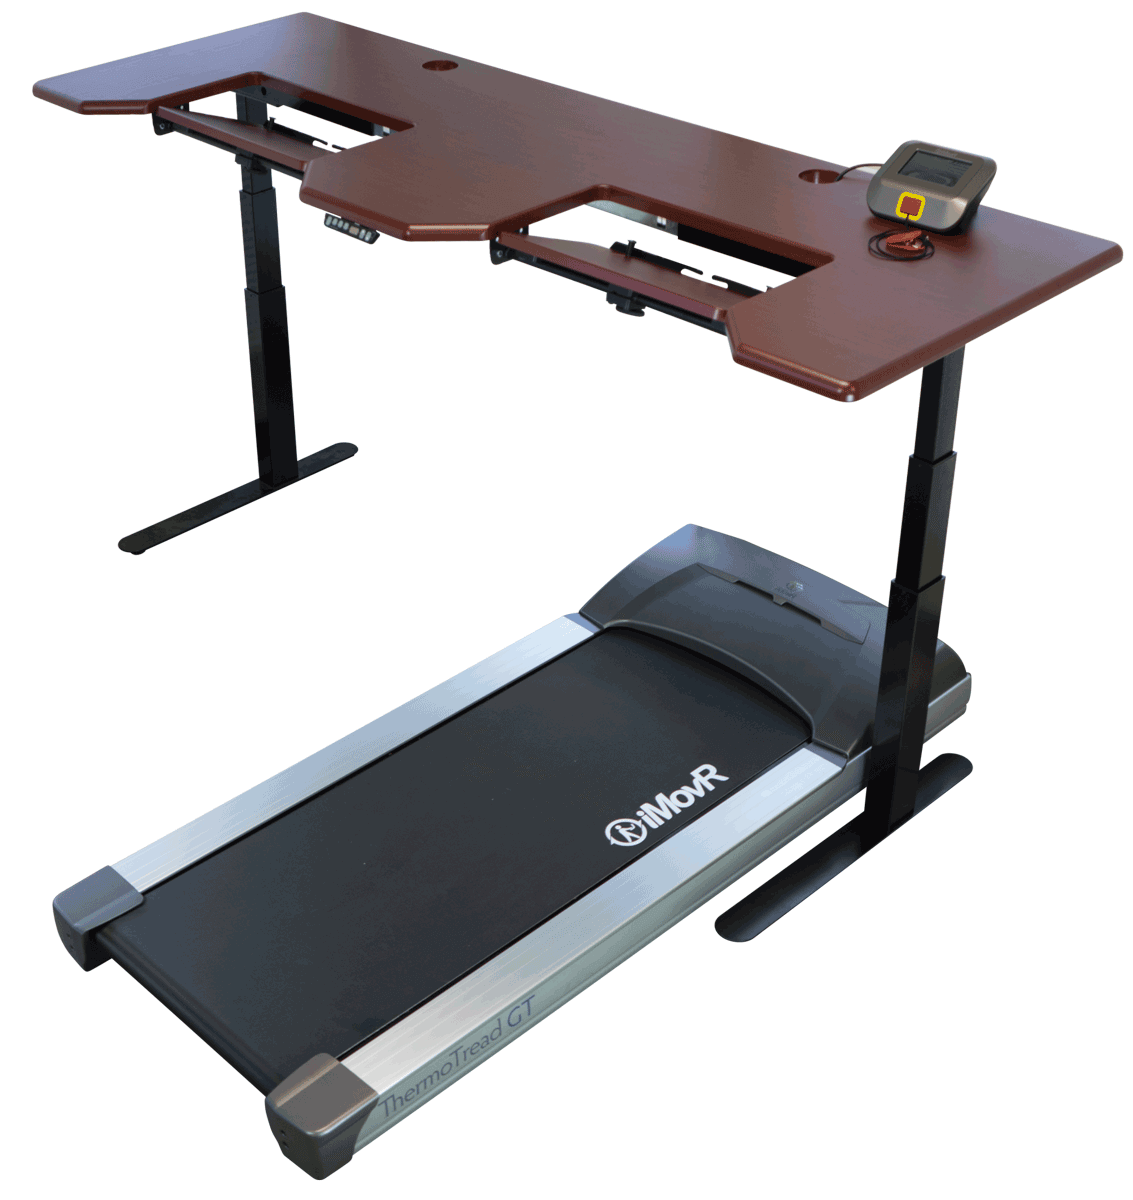 desk review thermodesk ellure thermotread treadmill workstation reviews imovr